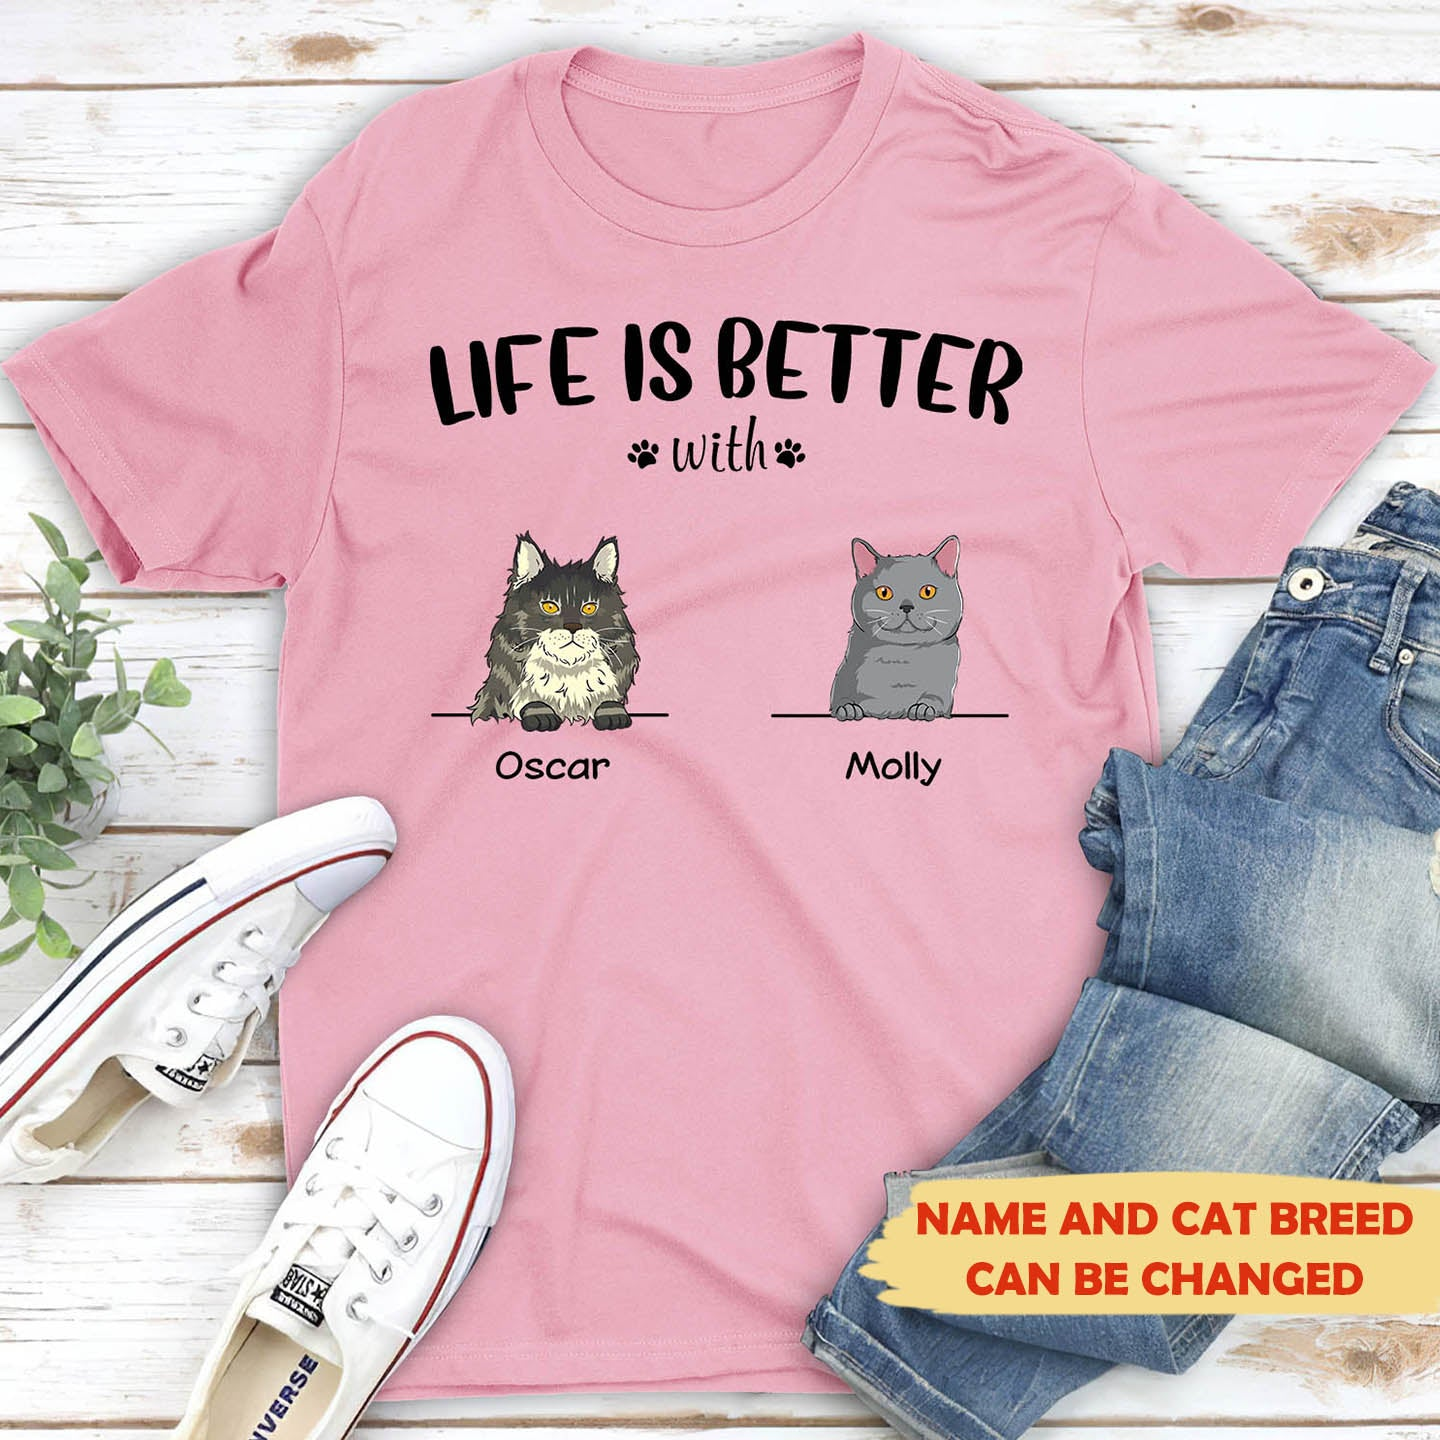 Life is better with cats - Personalized custom unisex T-shirt